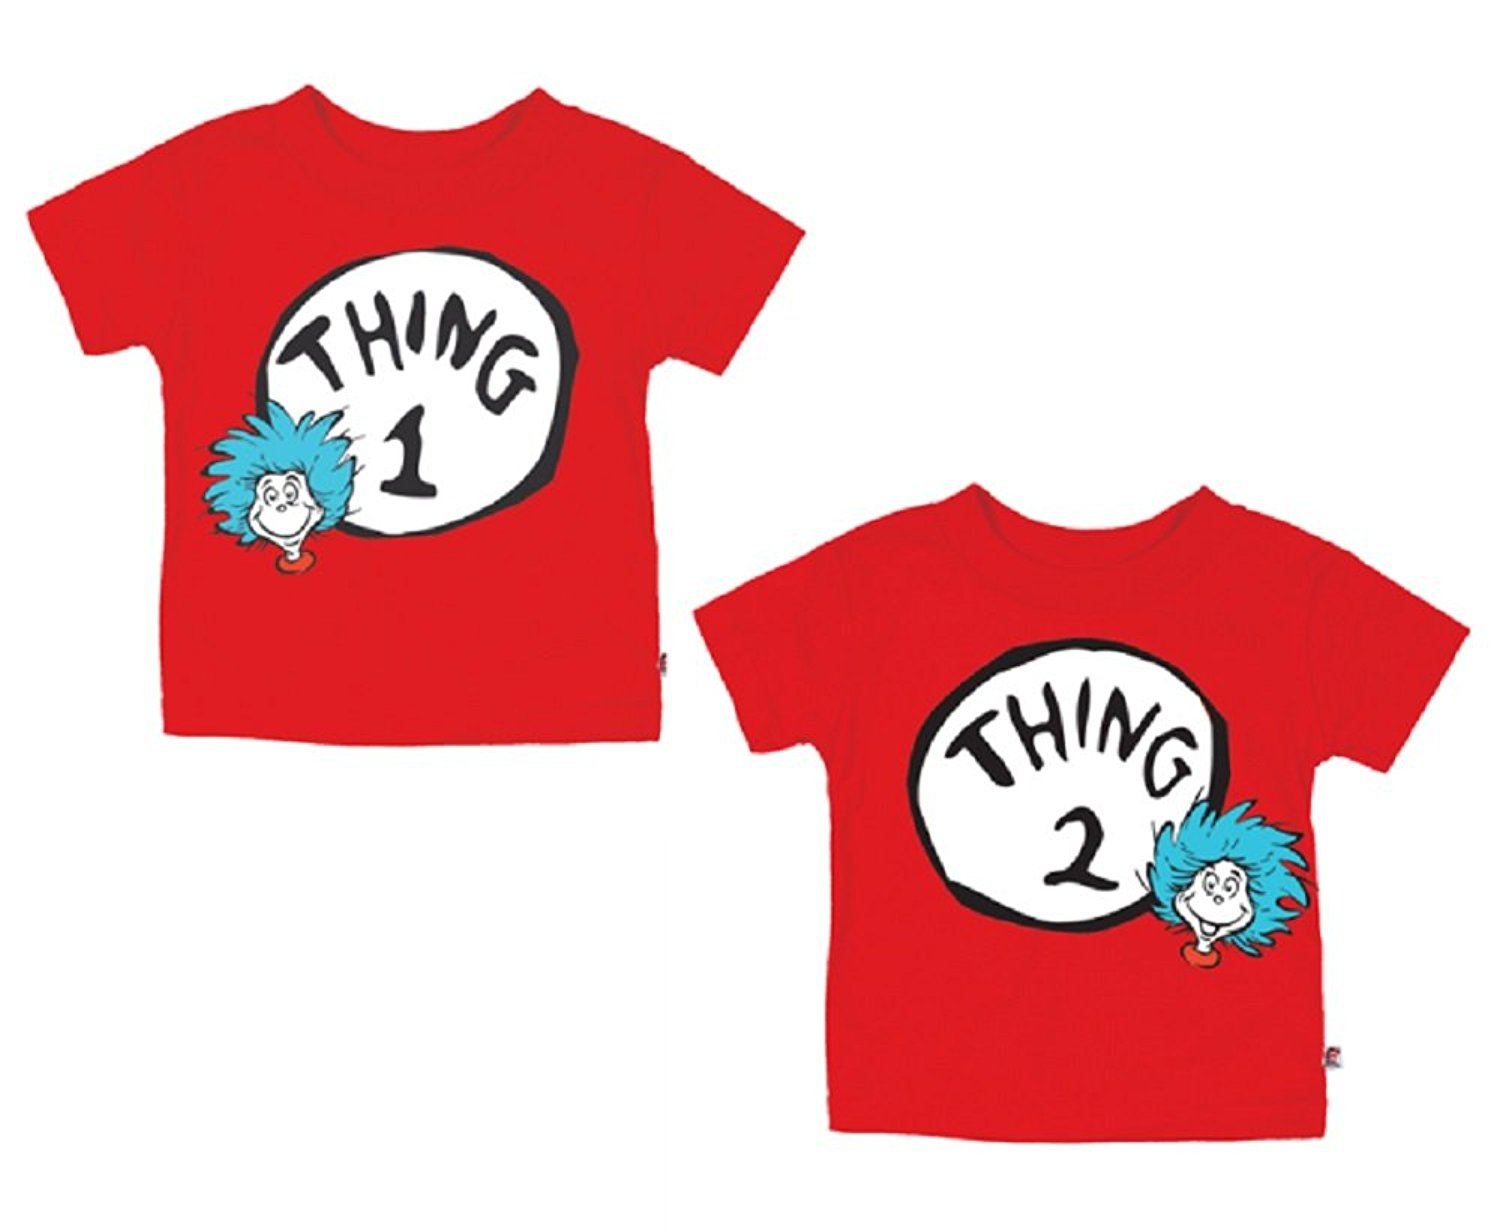 7acd272f996a Images Of Thing 1 And Thing 2   Free download best Images Of Thing 1 ...